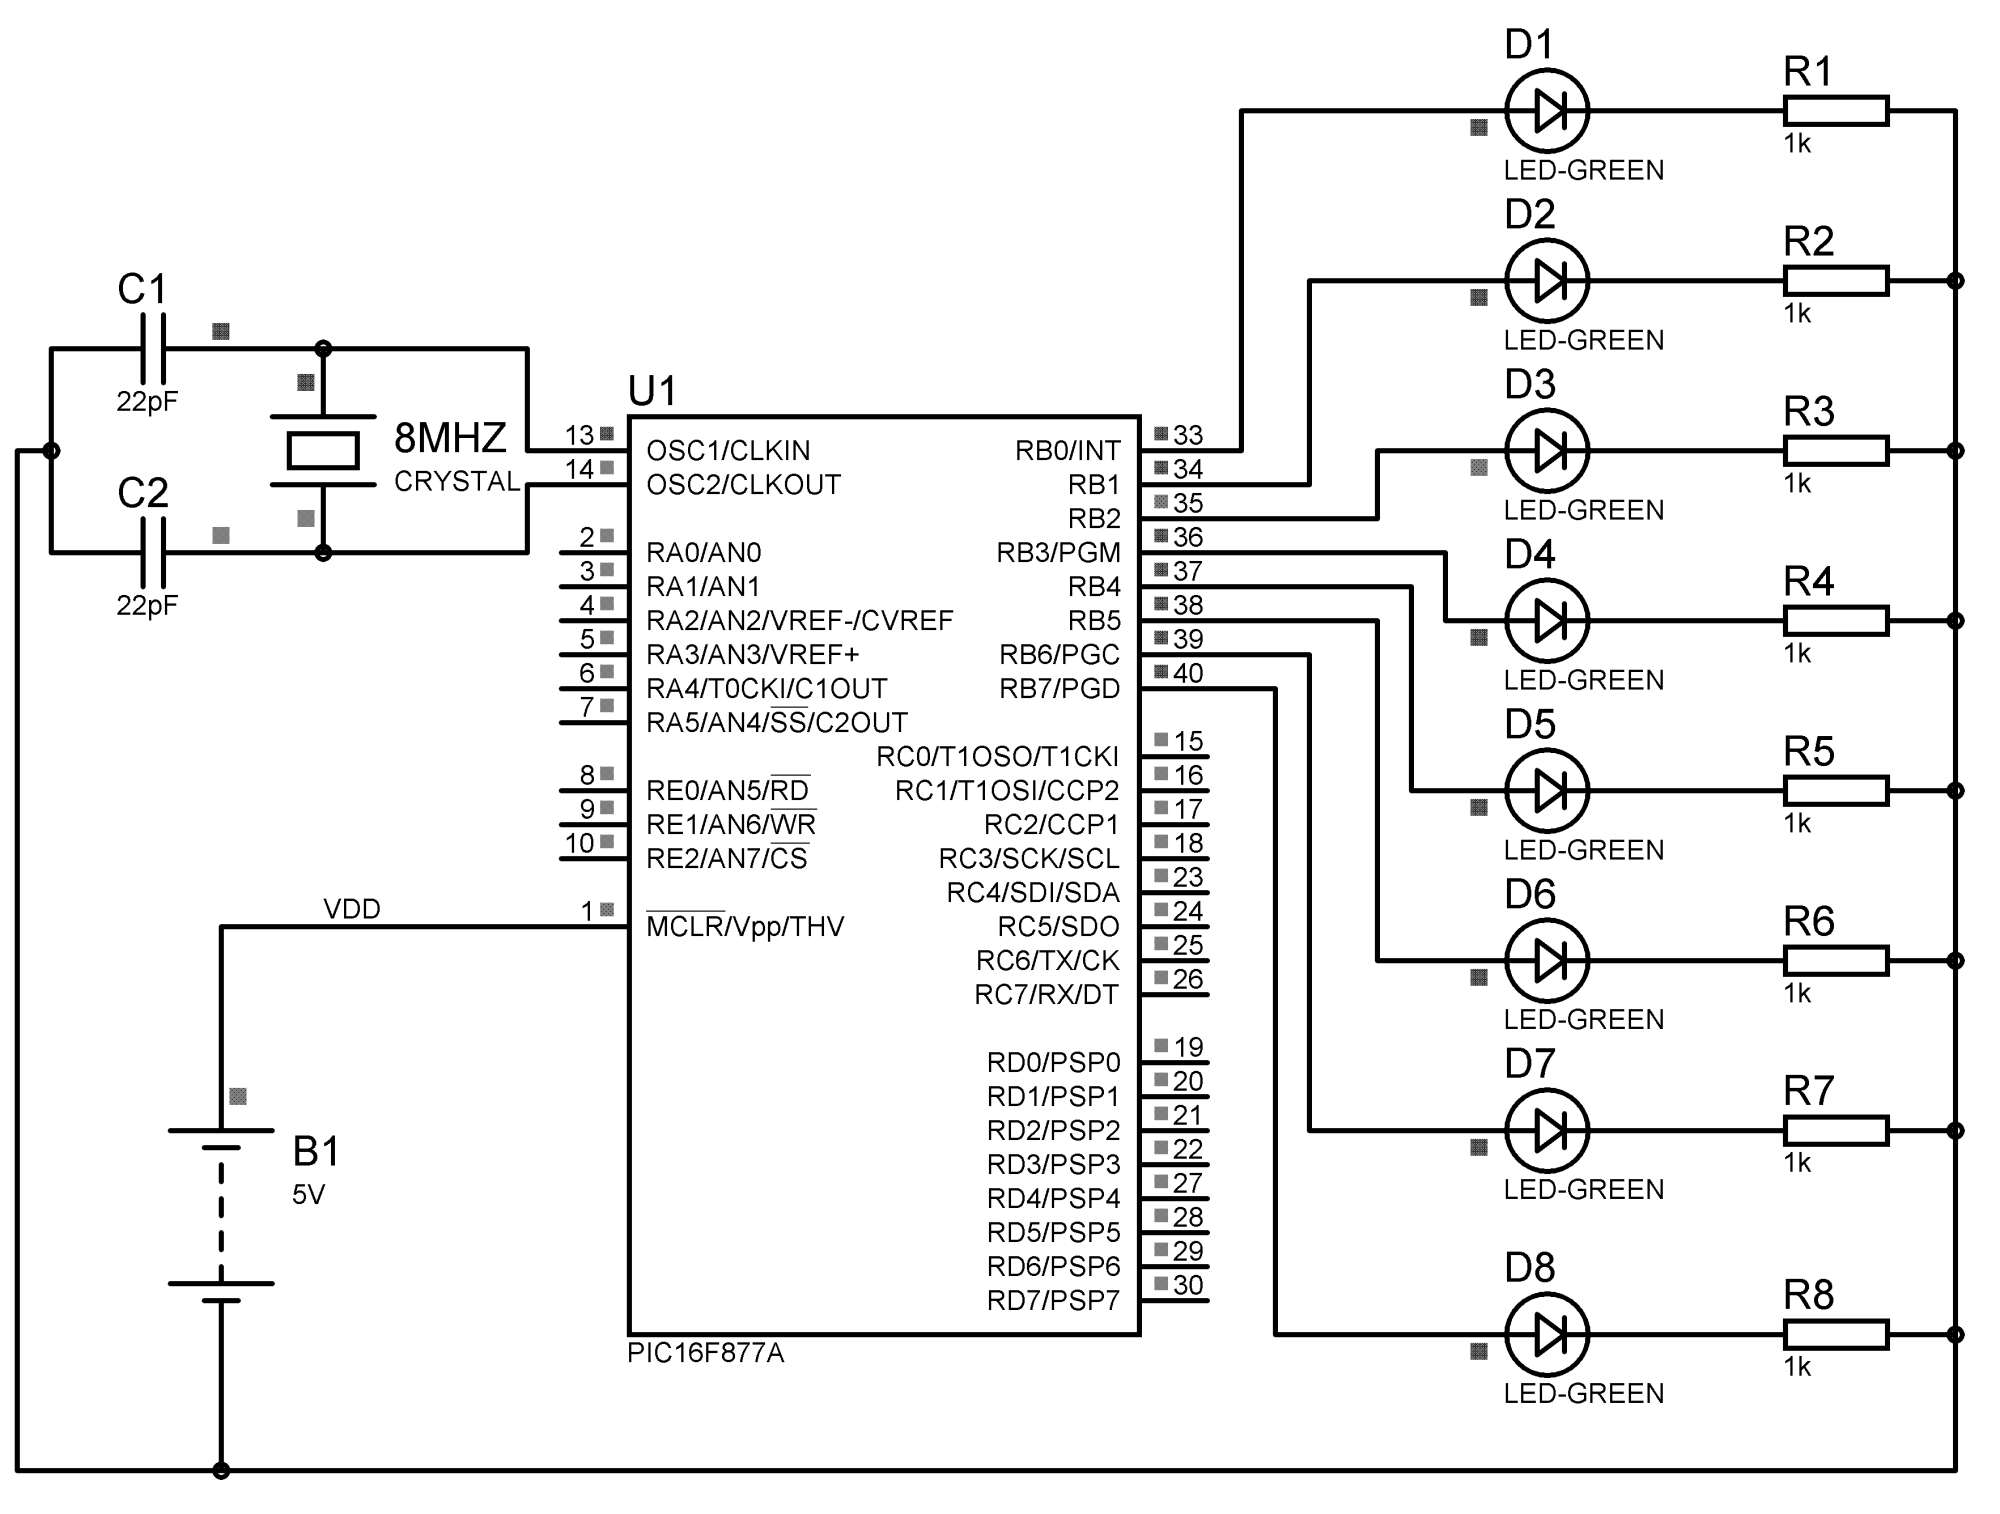 hight resolution of led chaser using pic microcontroller mikroc8 led chaser circuit diagram 14